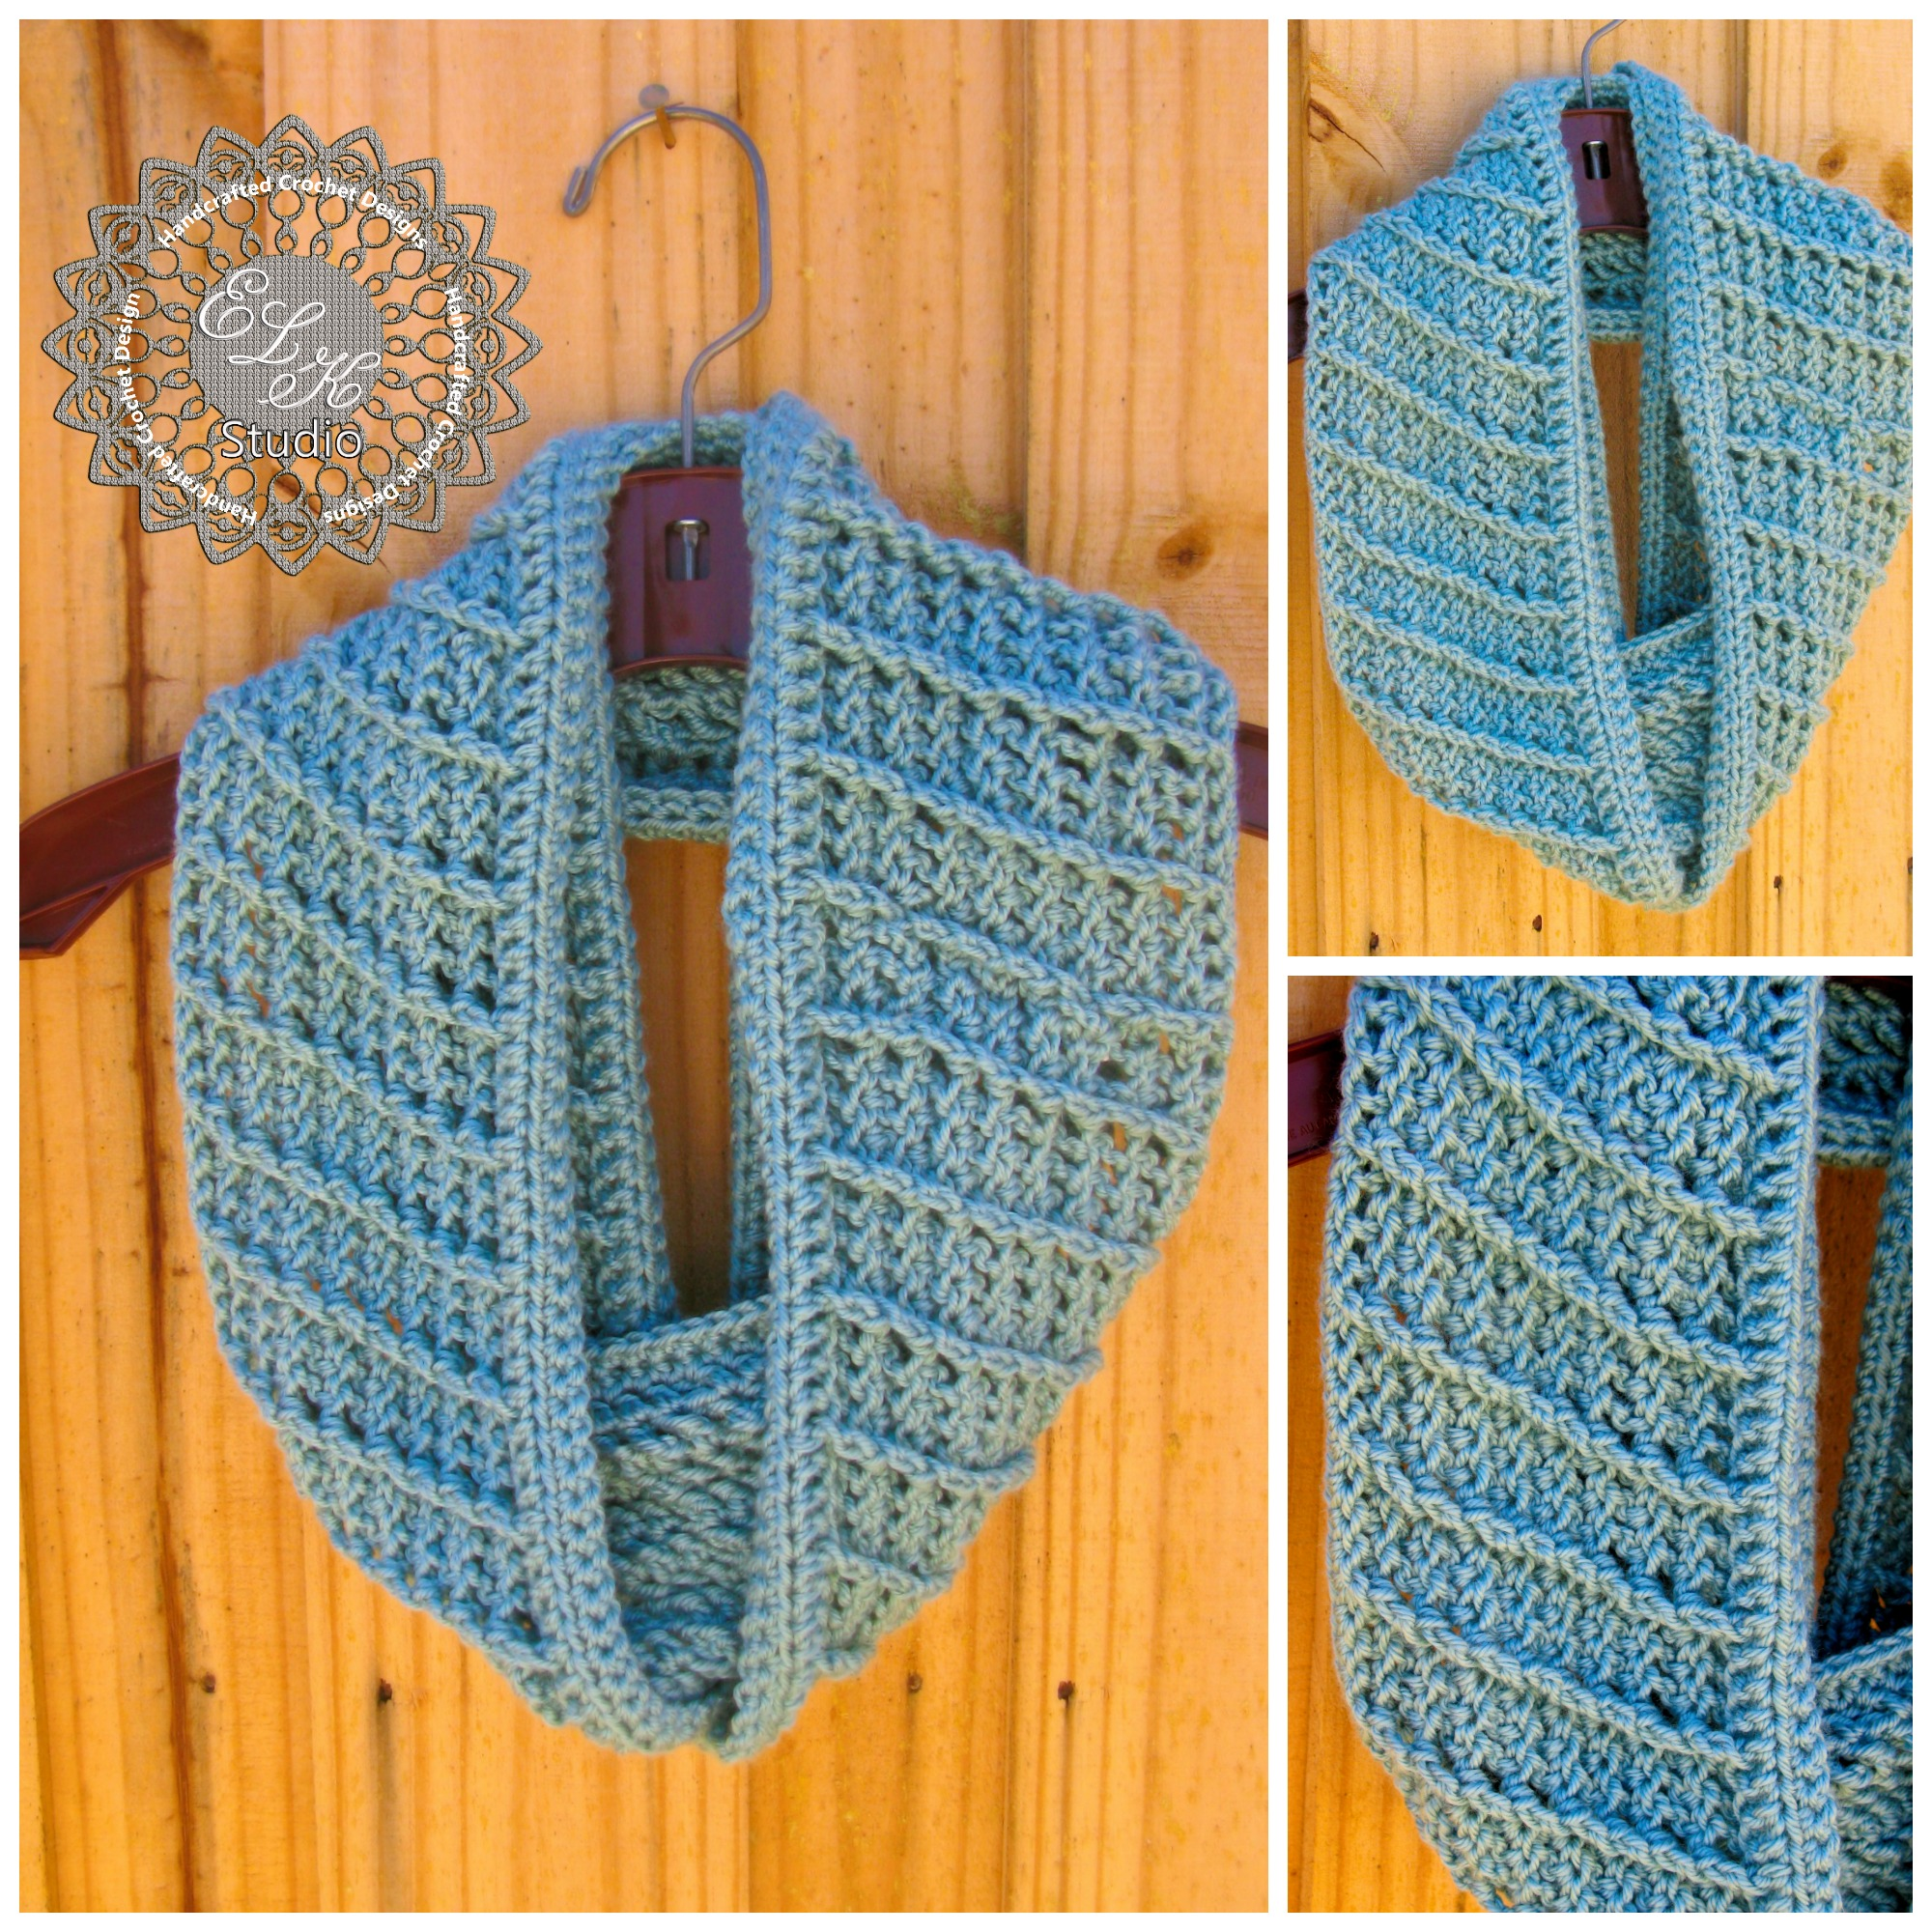 Free Patterns To And Crochet Infinity Scarf : Country Appeal - A Free Crochet Infinity Scarf Pattern ...